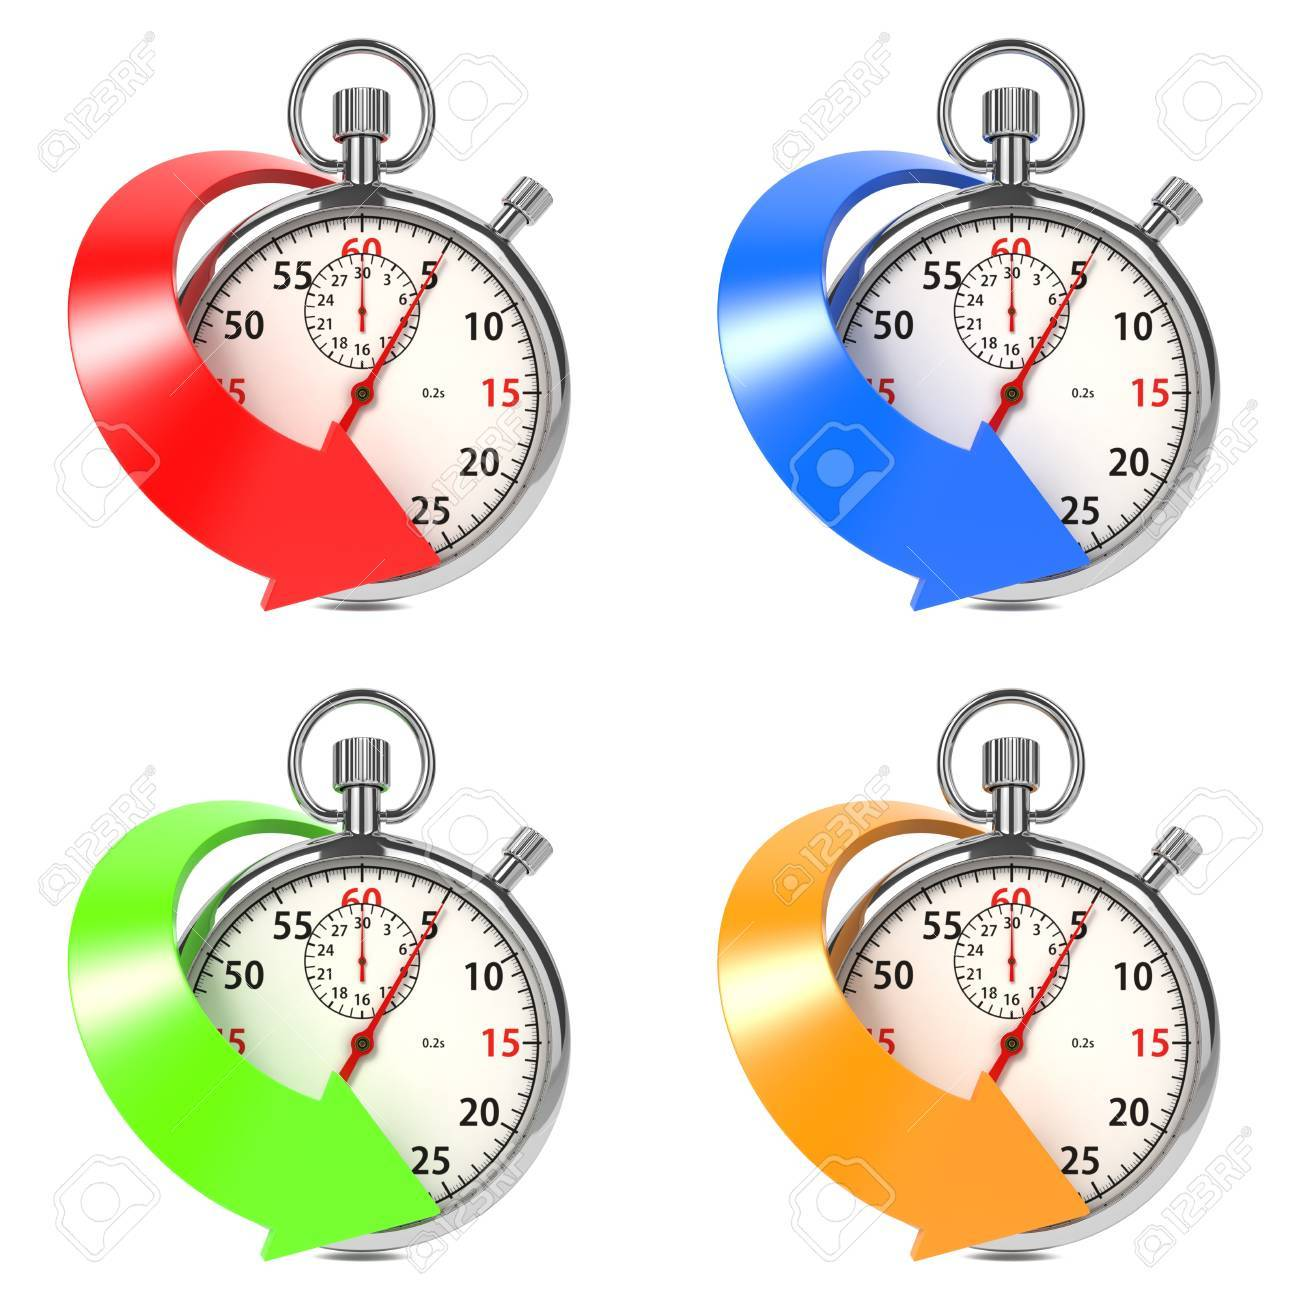 Stopwatch with Colored Arrow  Set from Four Images on White Background Stock Photo - 16219320